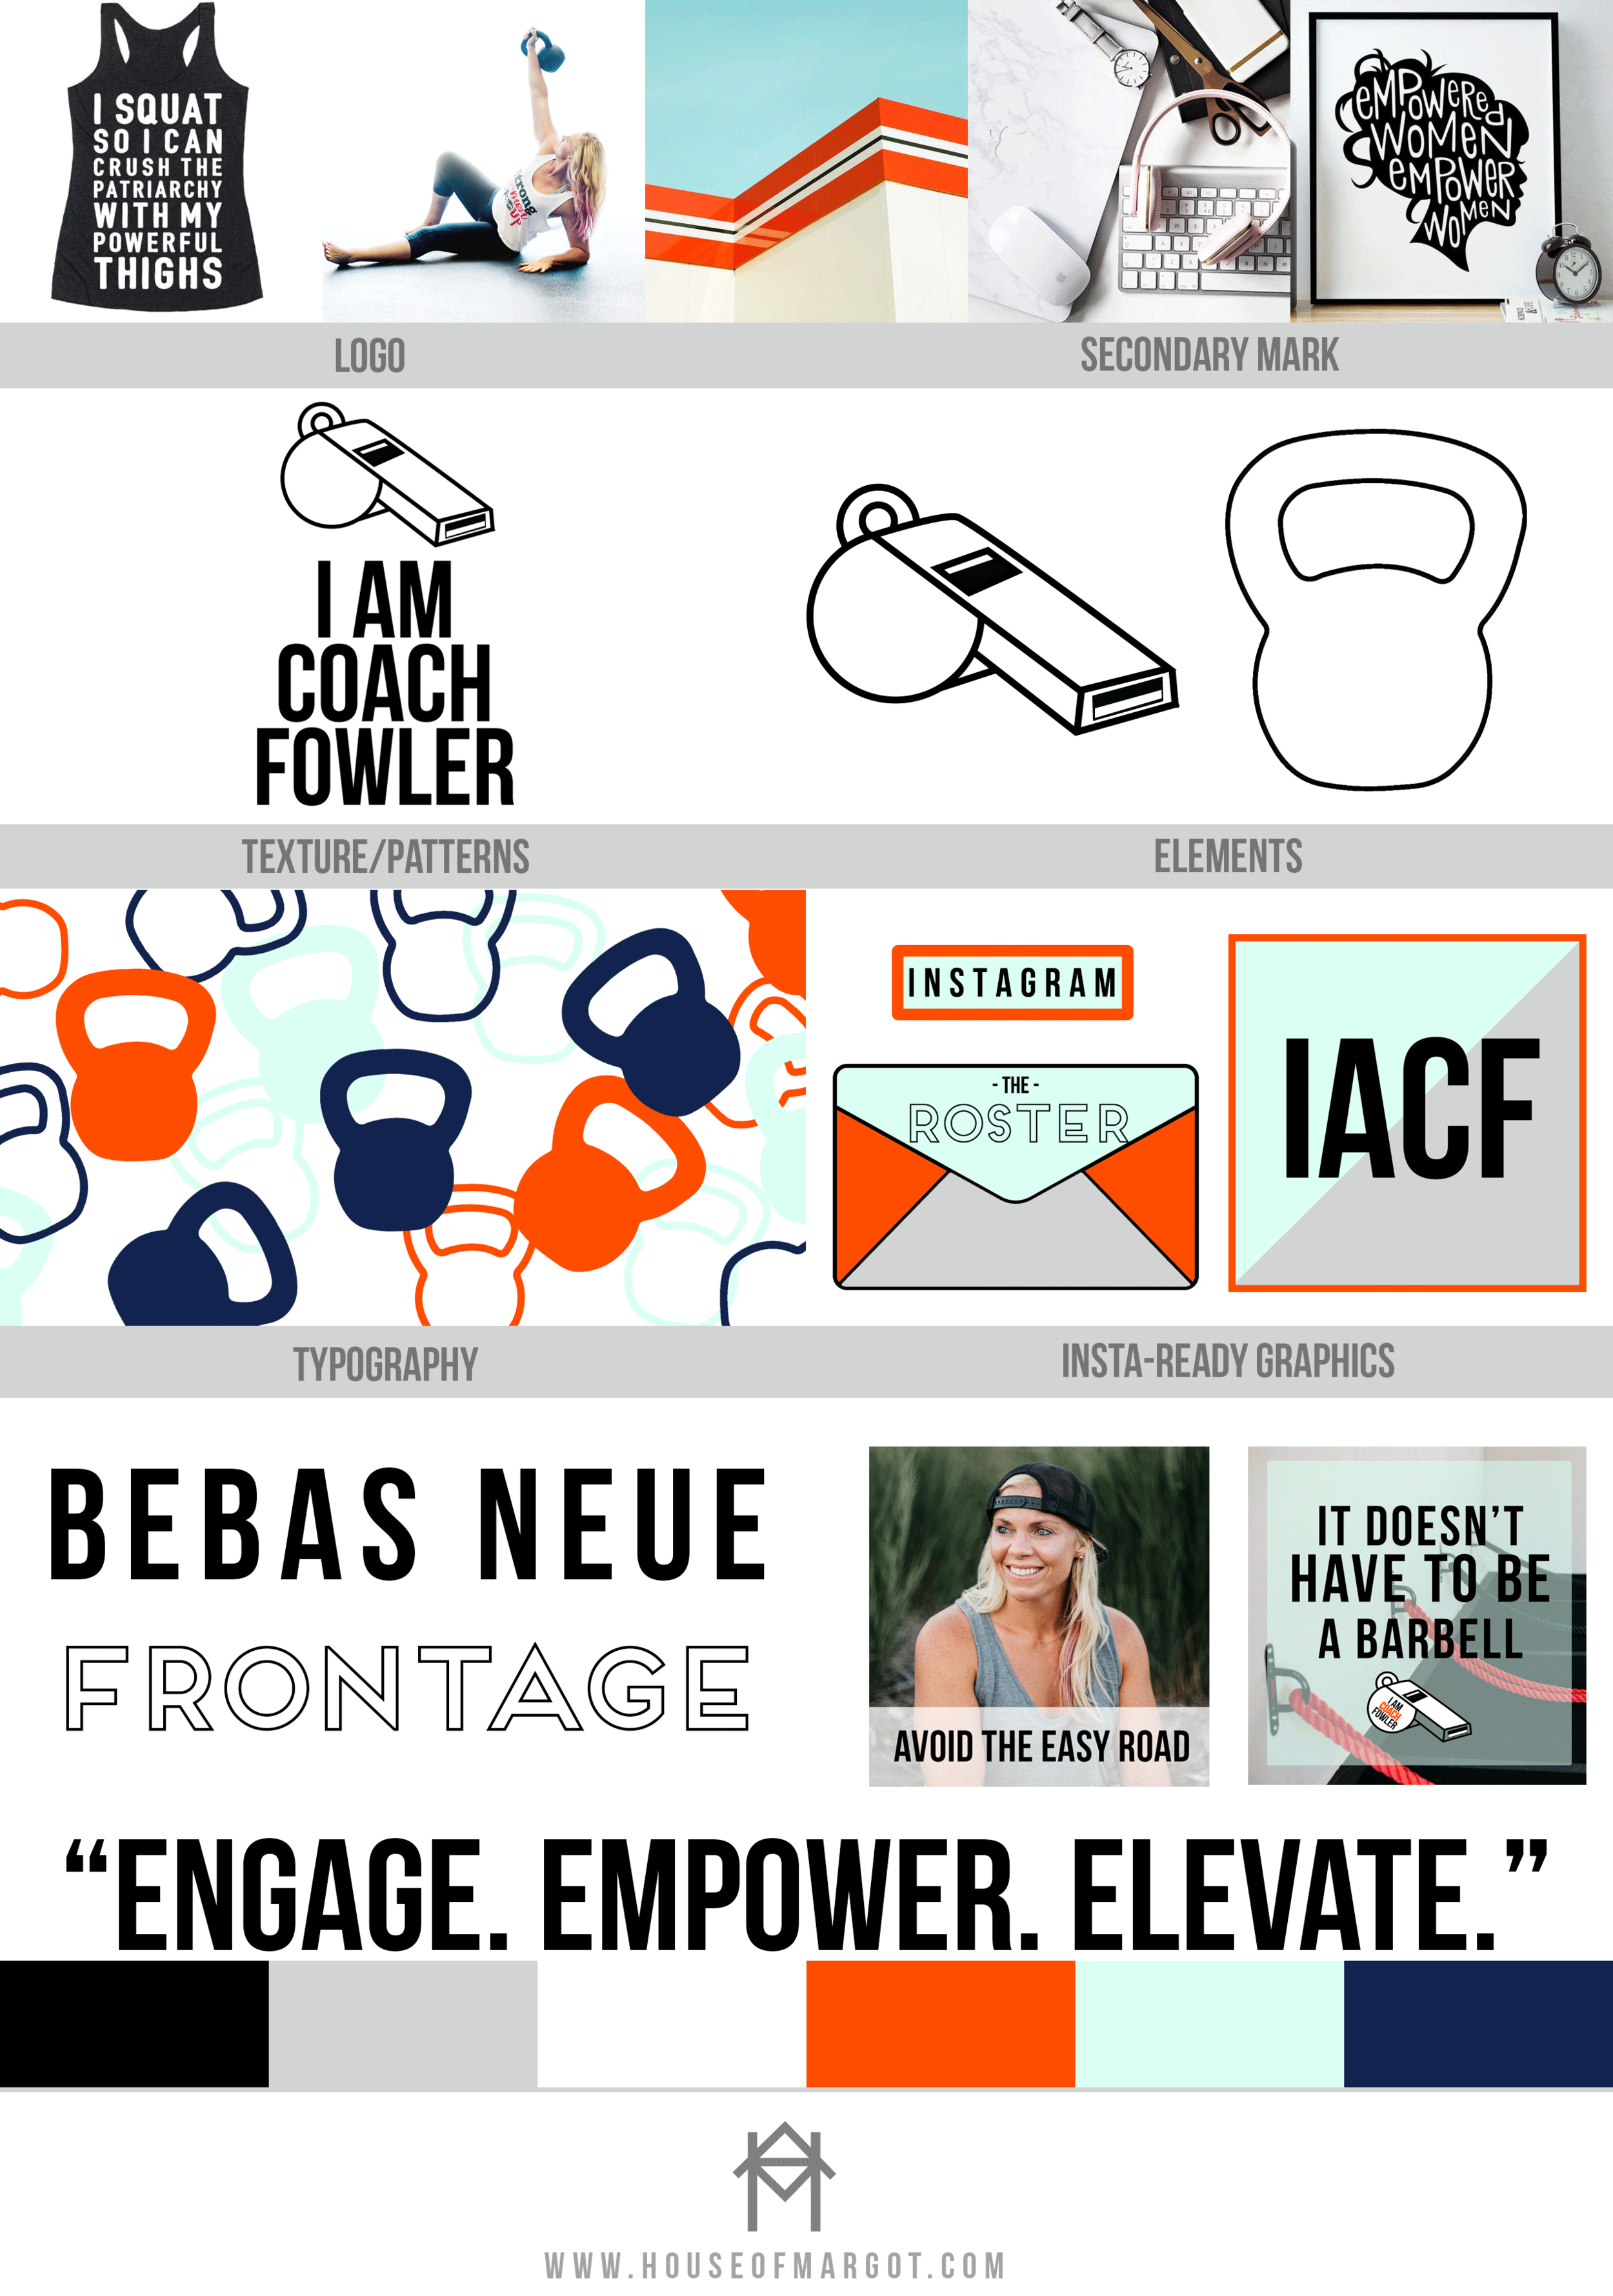 Brand Board | I Am Coach Fowler | Fitness Photography | Fitness Brand | Personal Training | Bebas Neue | Frontage Font | Kettle Bells | Web Design | House of Margot